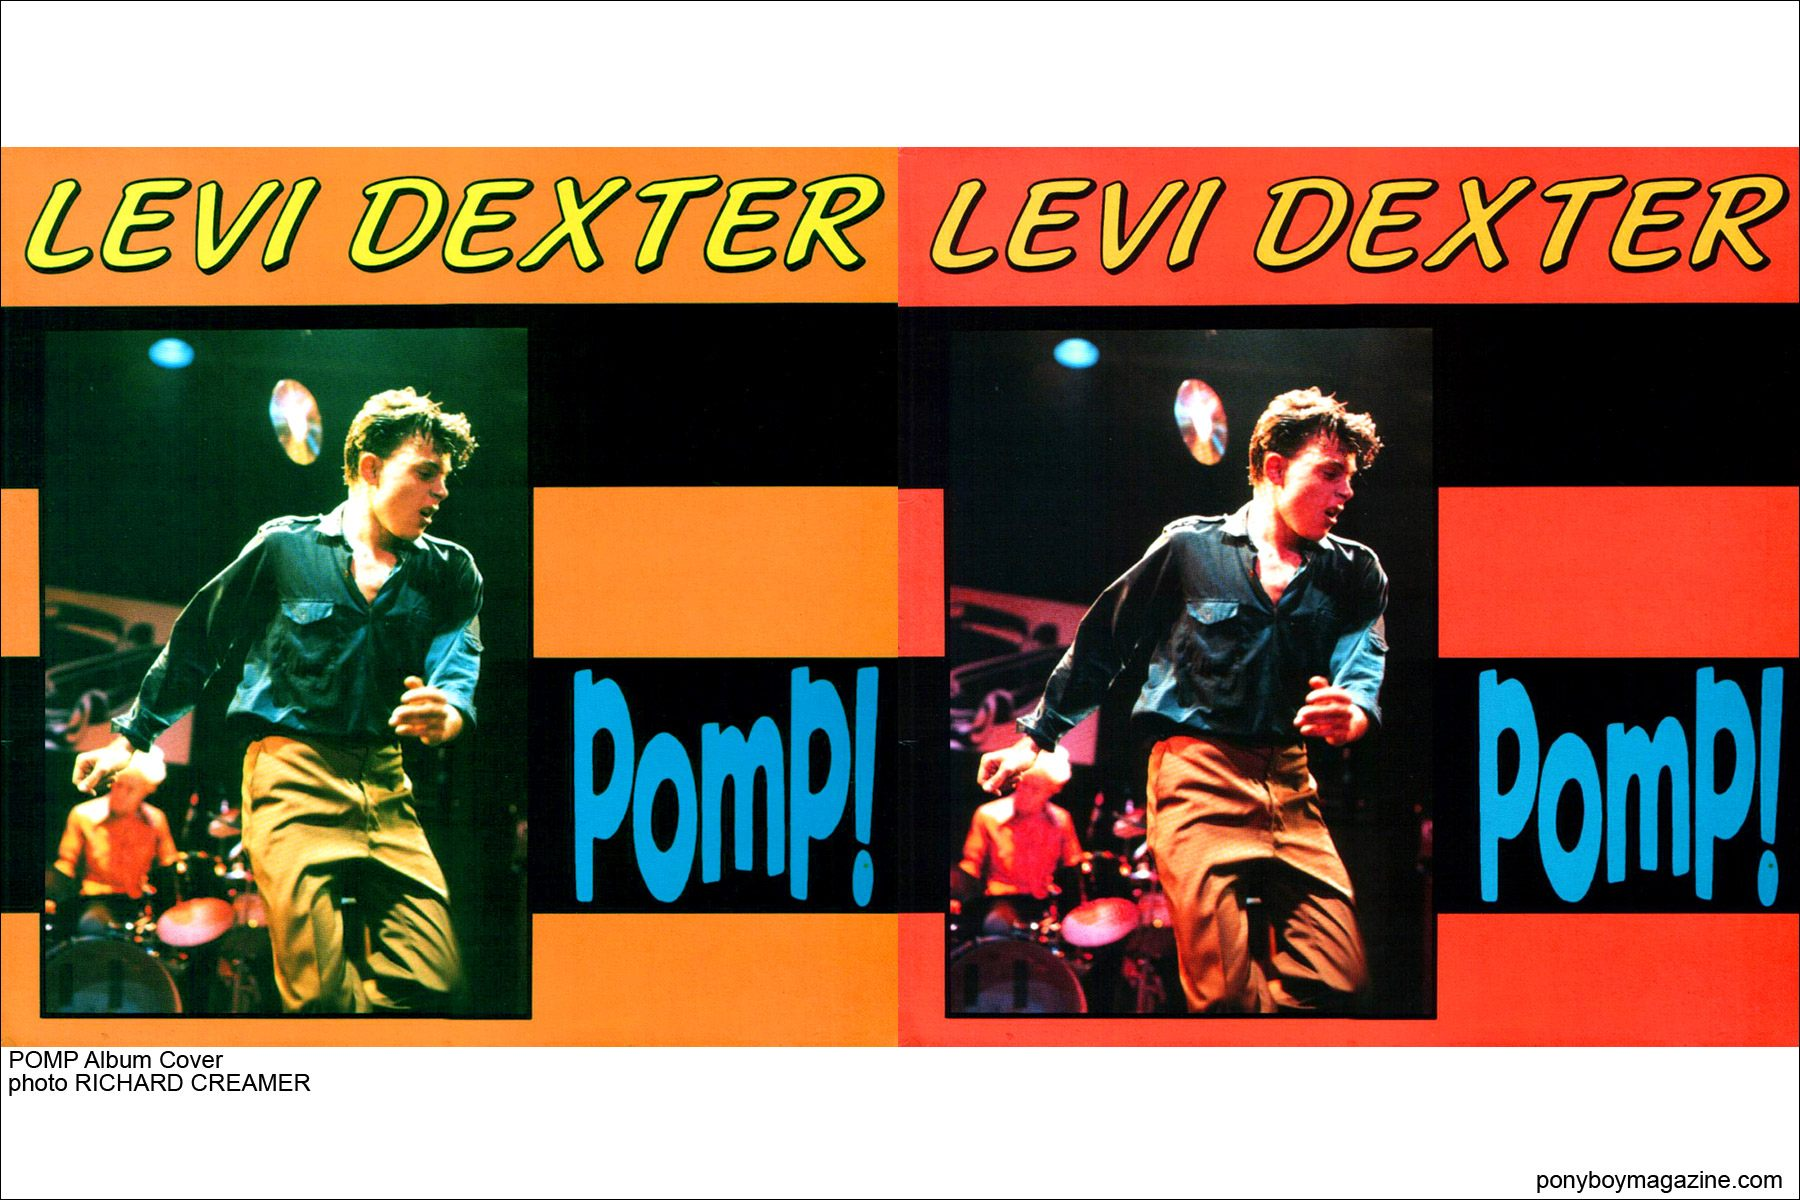 Pomp album cover, Levi Dexter for Ponyboy Magazine.